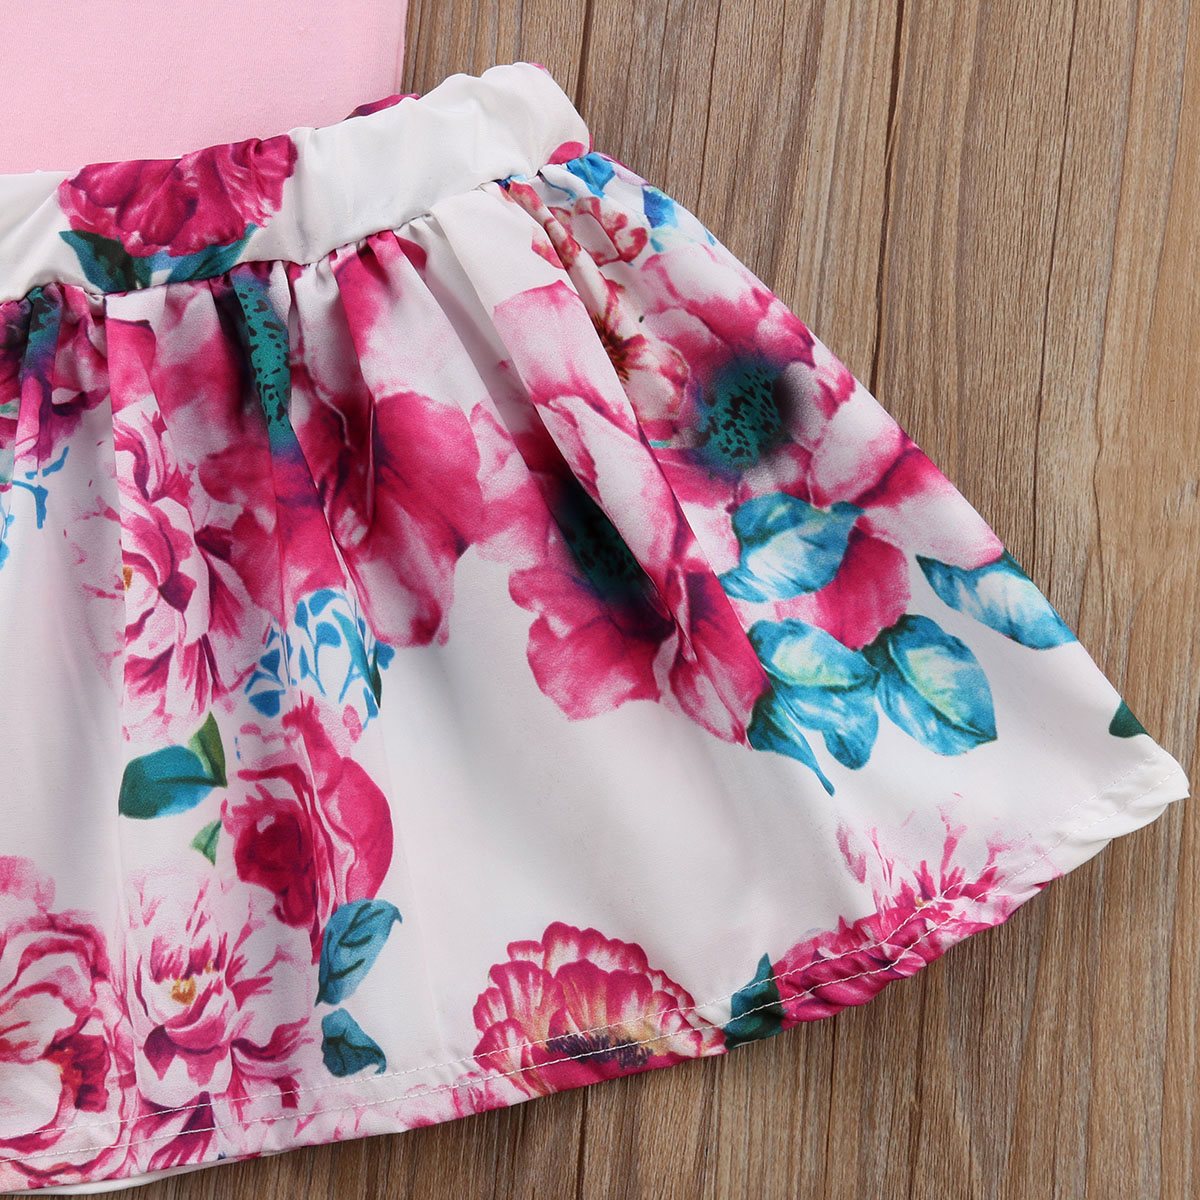 2PCS Toddler Fashion Girls Summer Clothing Set Straps Sleeveless T-Shirt+Floral A-line Skirt Outfits Kid Clothes